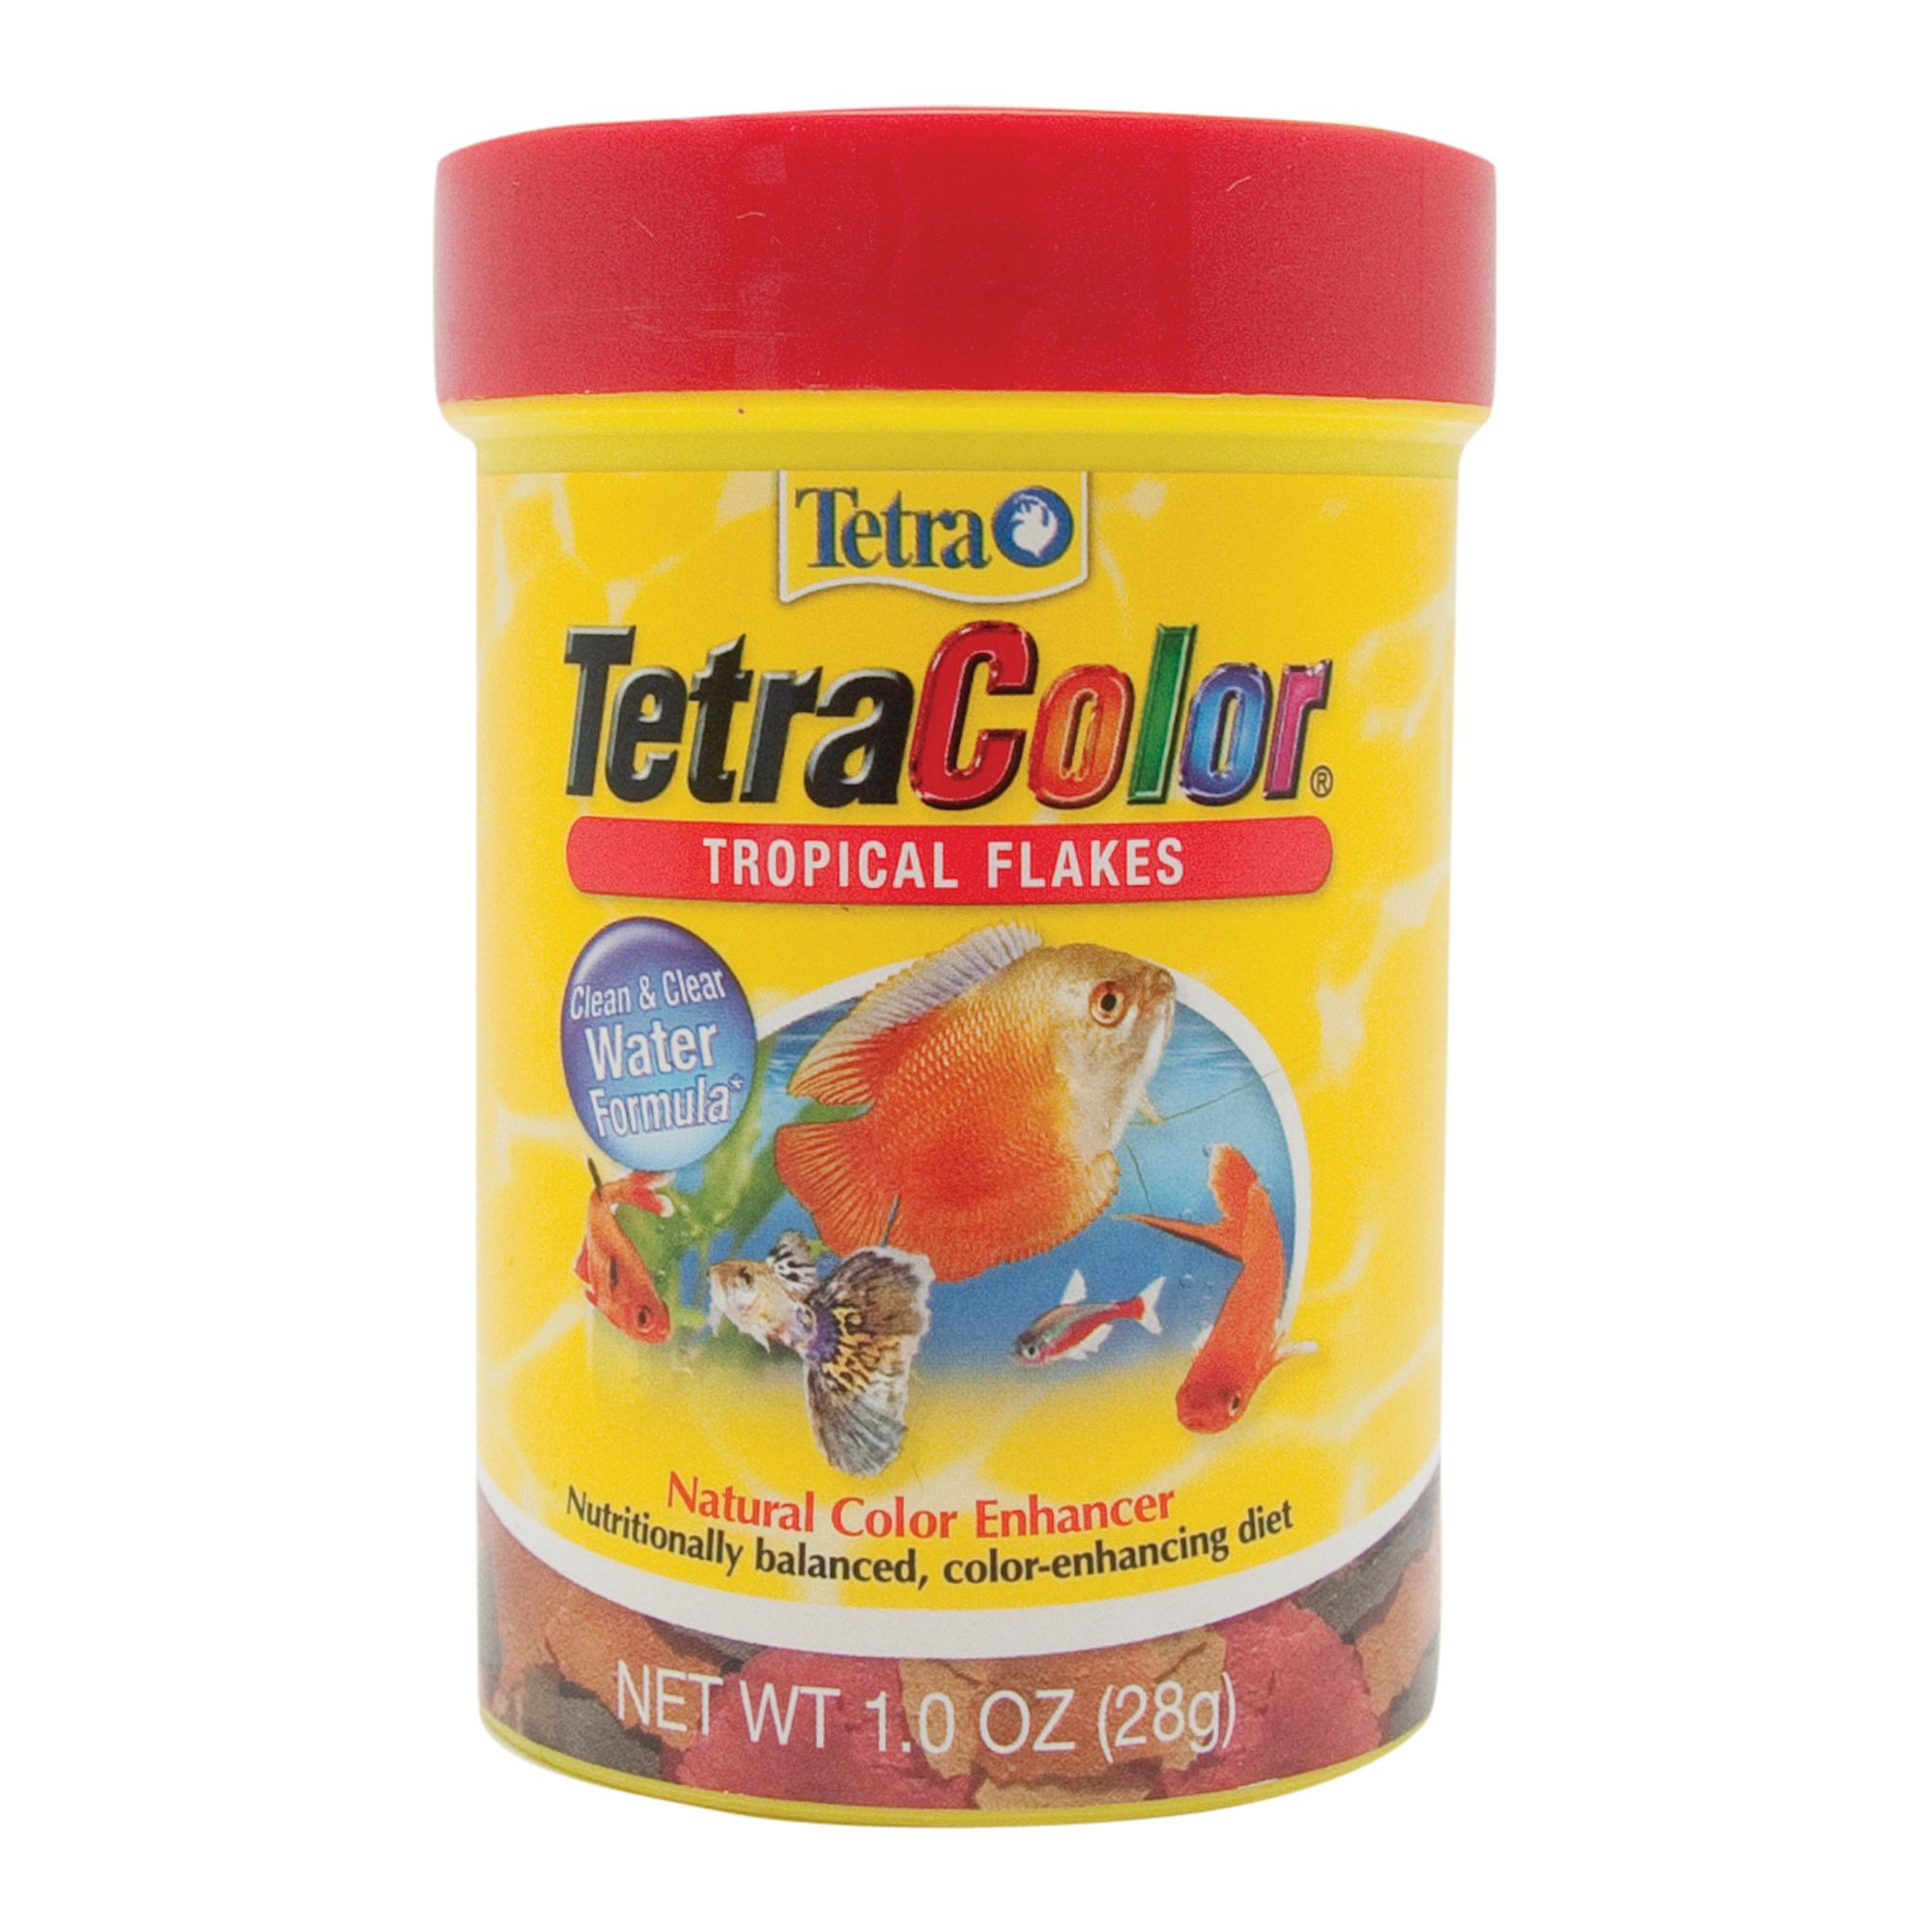 046798771609 upc tetra tetra color tropical flakes 1 oz for Food barcode